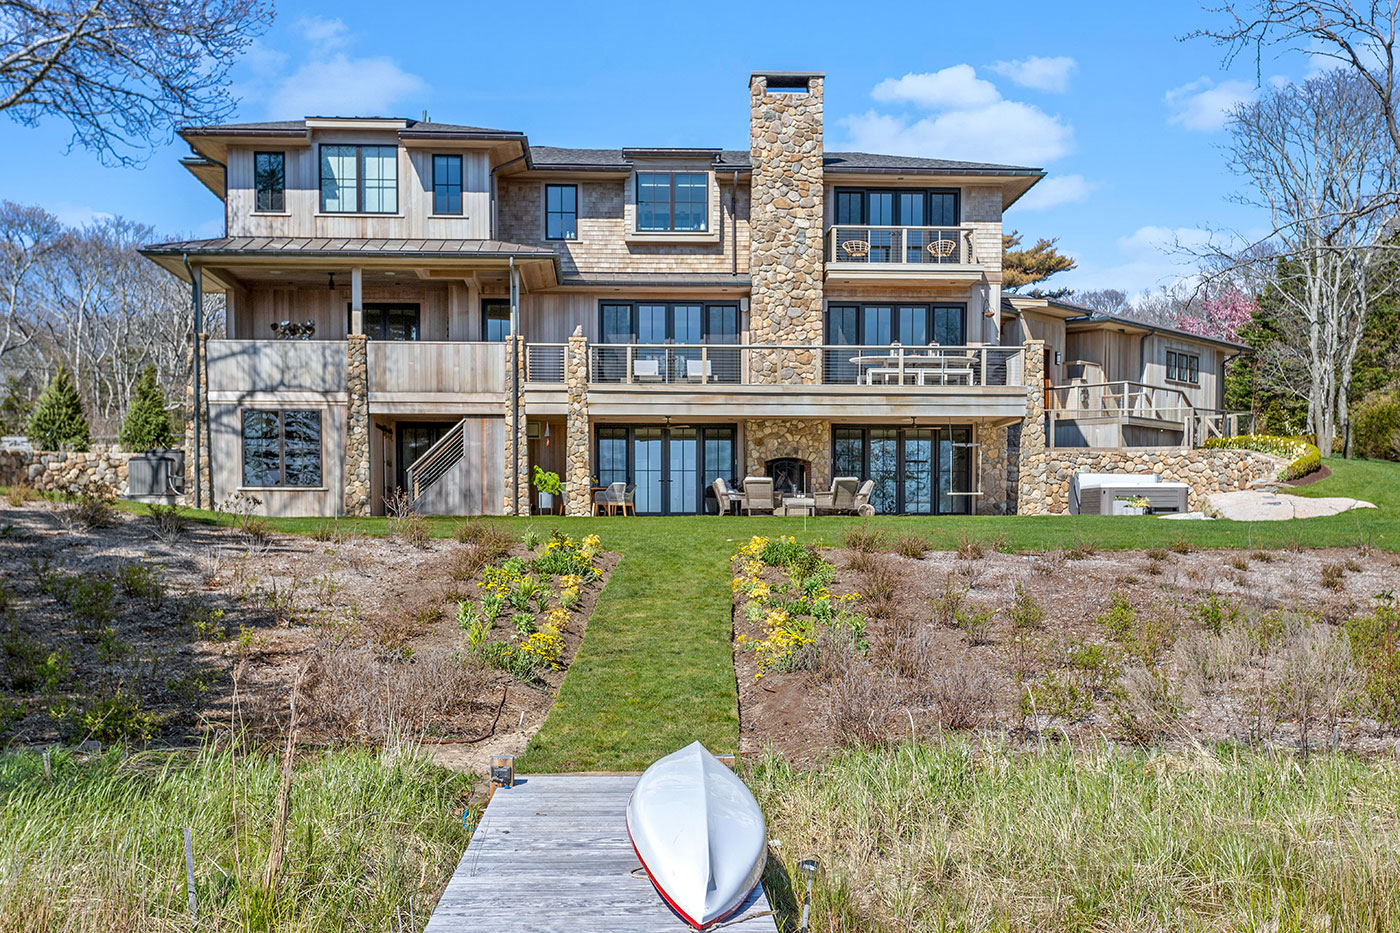 Year-round oceanfront home designed by Gakidis + Stewart Design Group